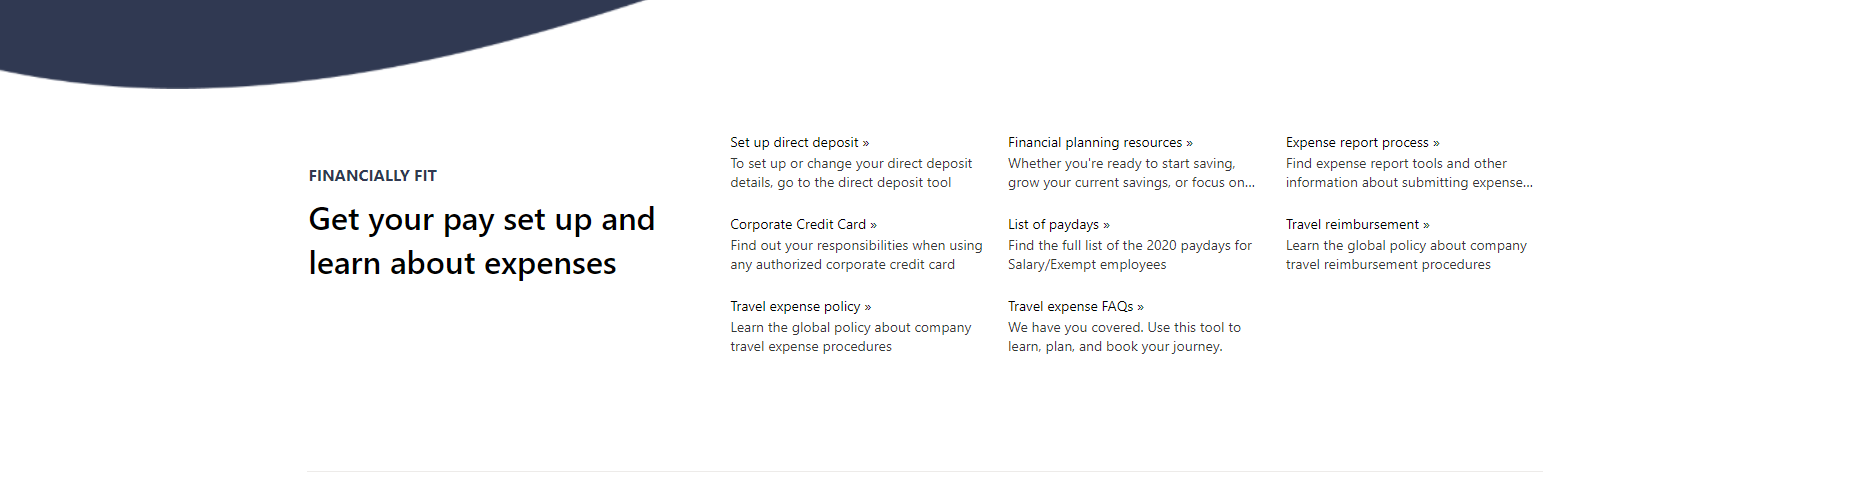 Employee Onboarding Site Layout Example 4